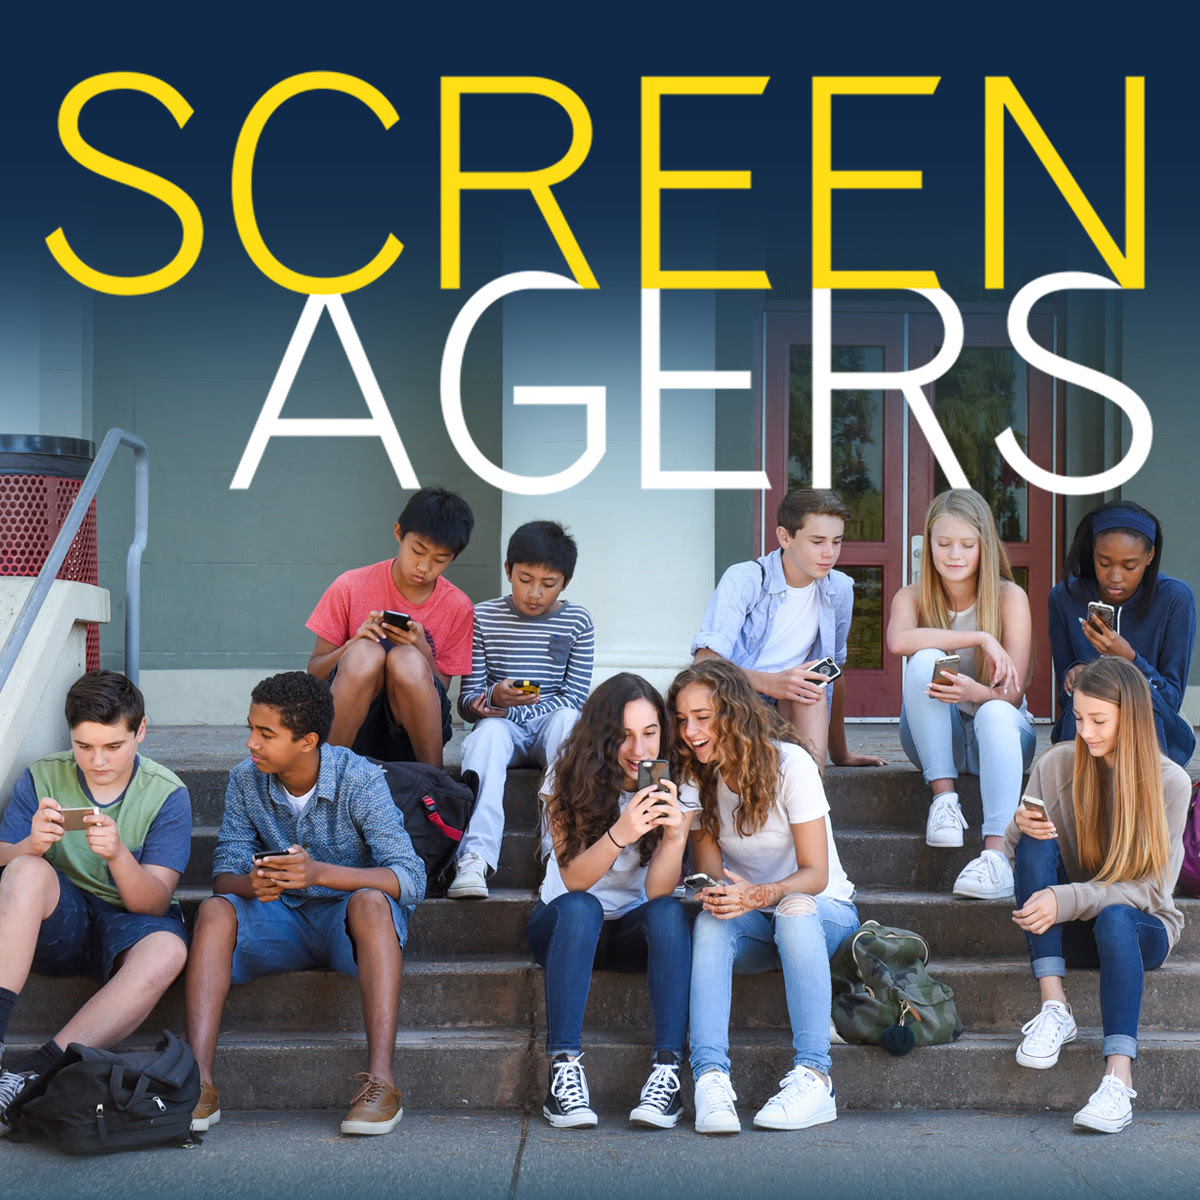 Screenagers Film Presented By Oromocto High School